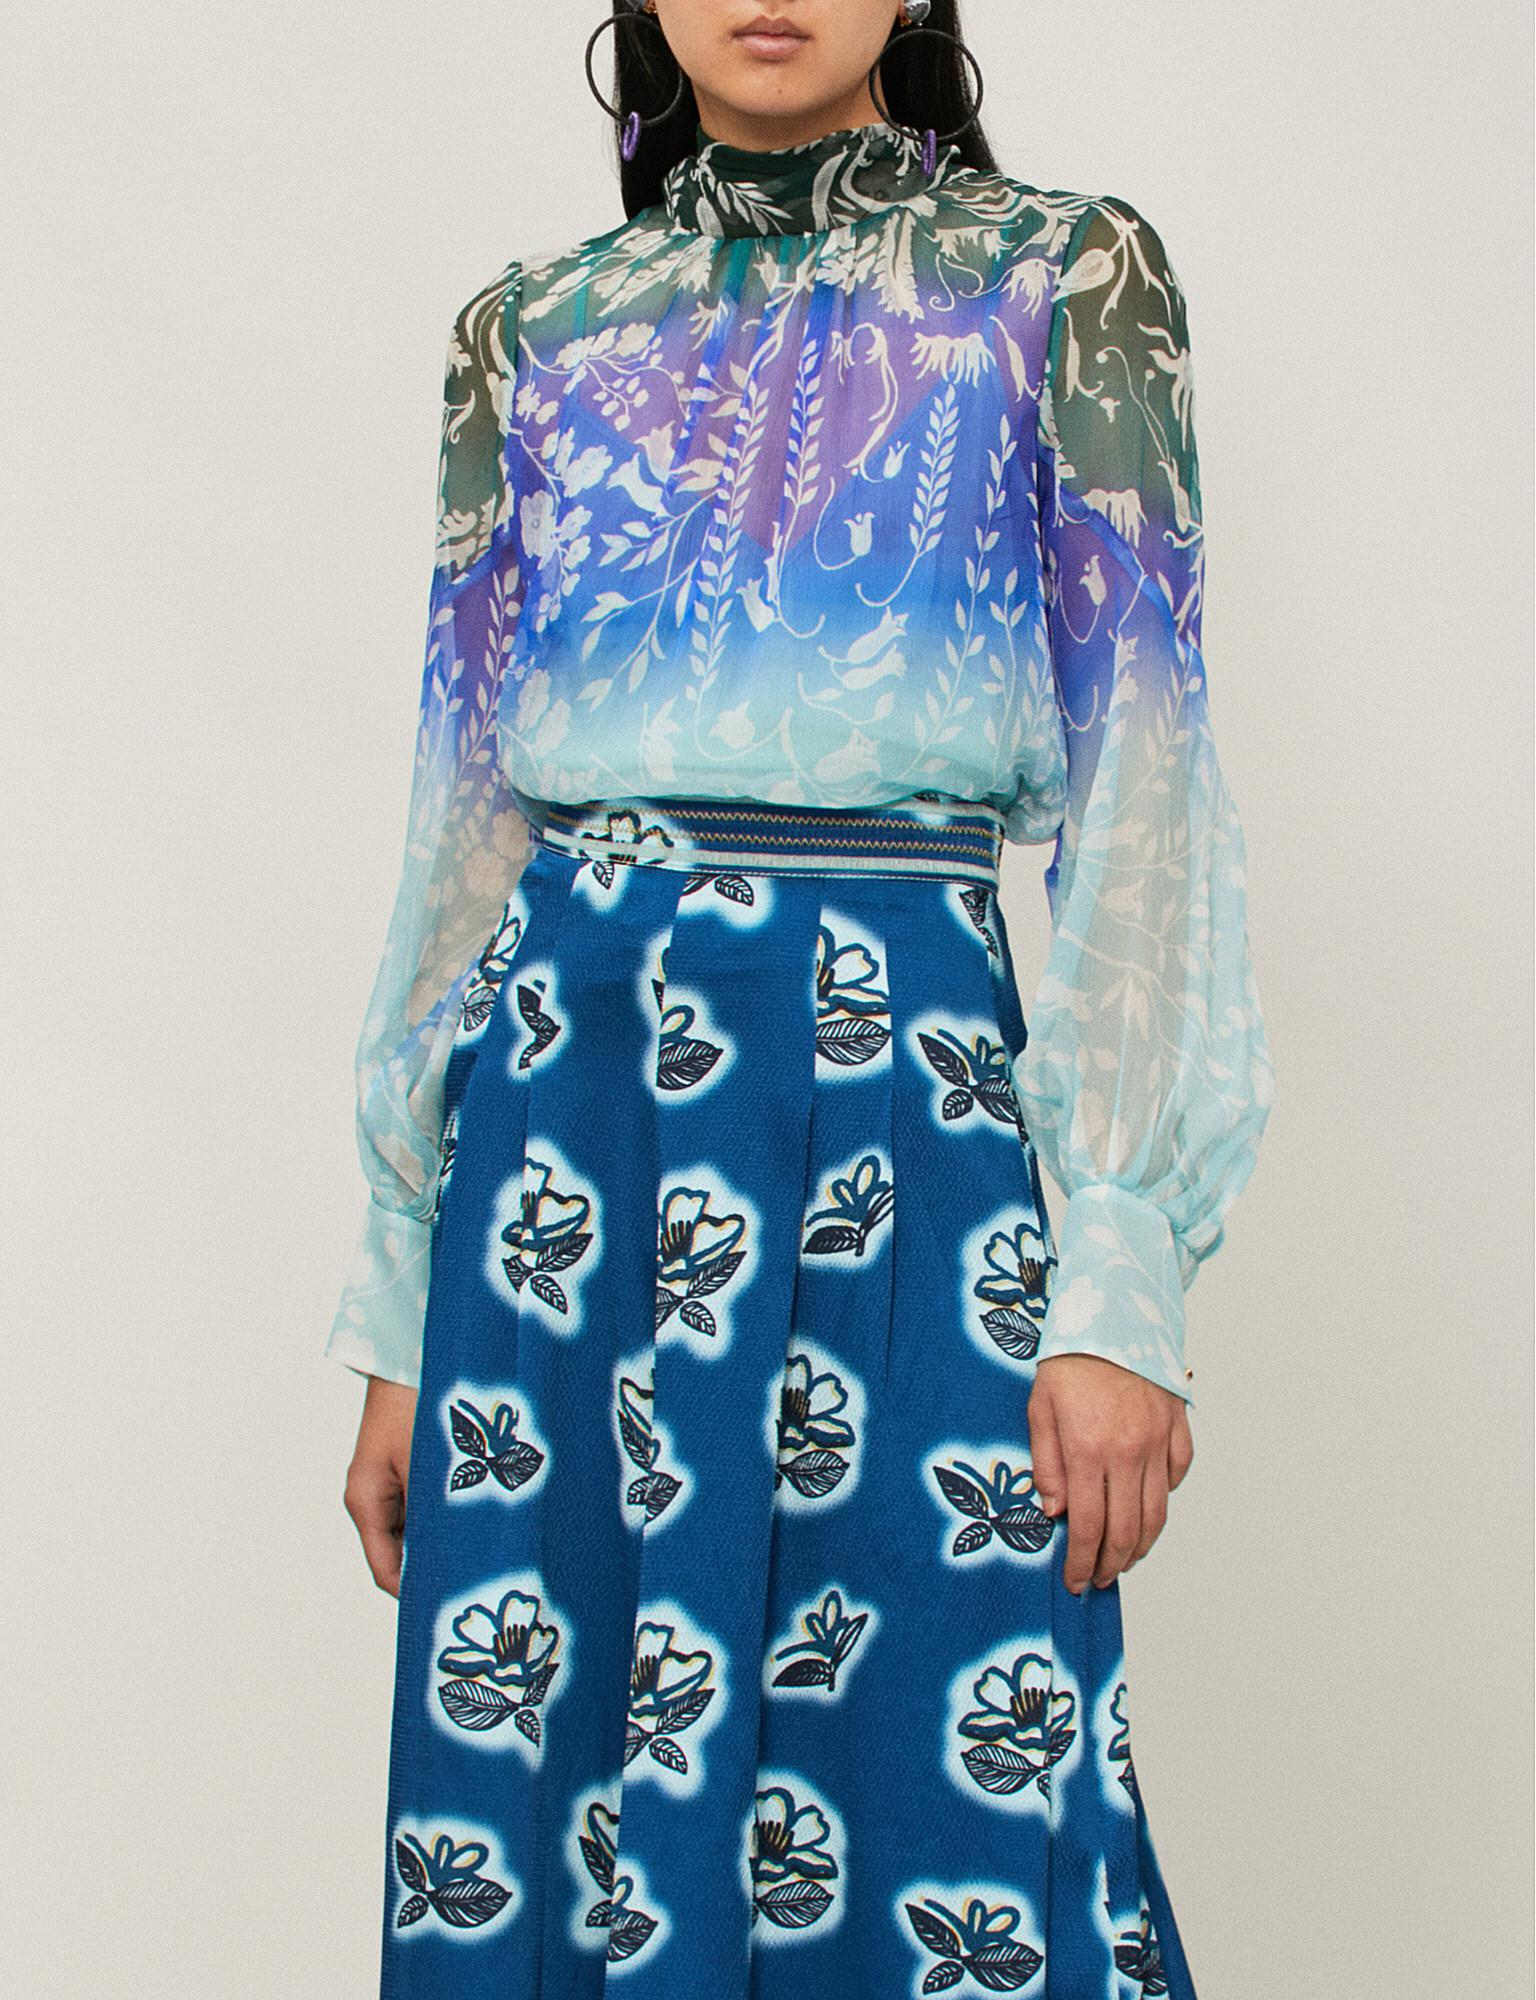 a6371219184fc8 Peter Pilotto Floral-print High-neck Silk-crepe Top in Blue - Lyst